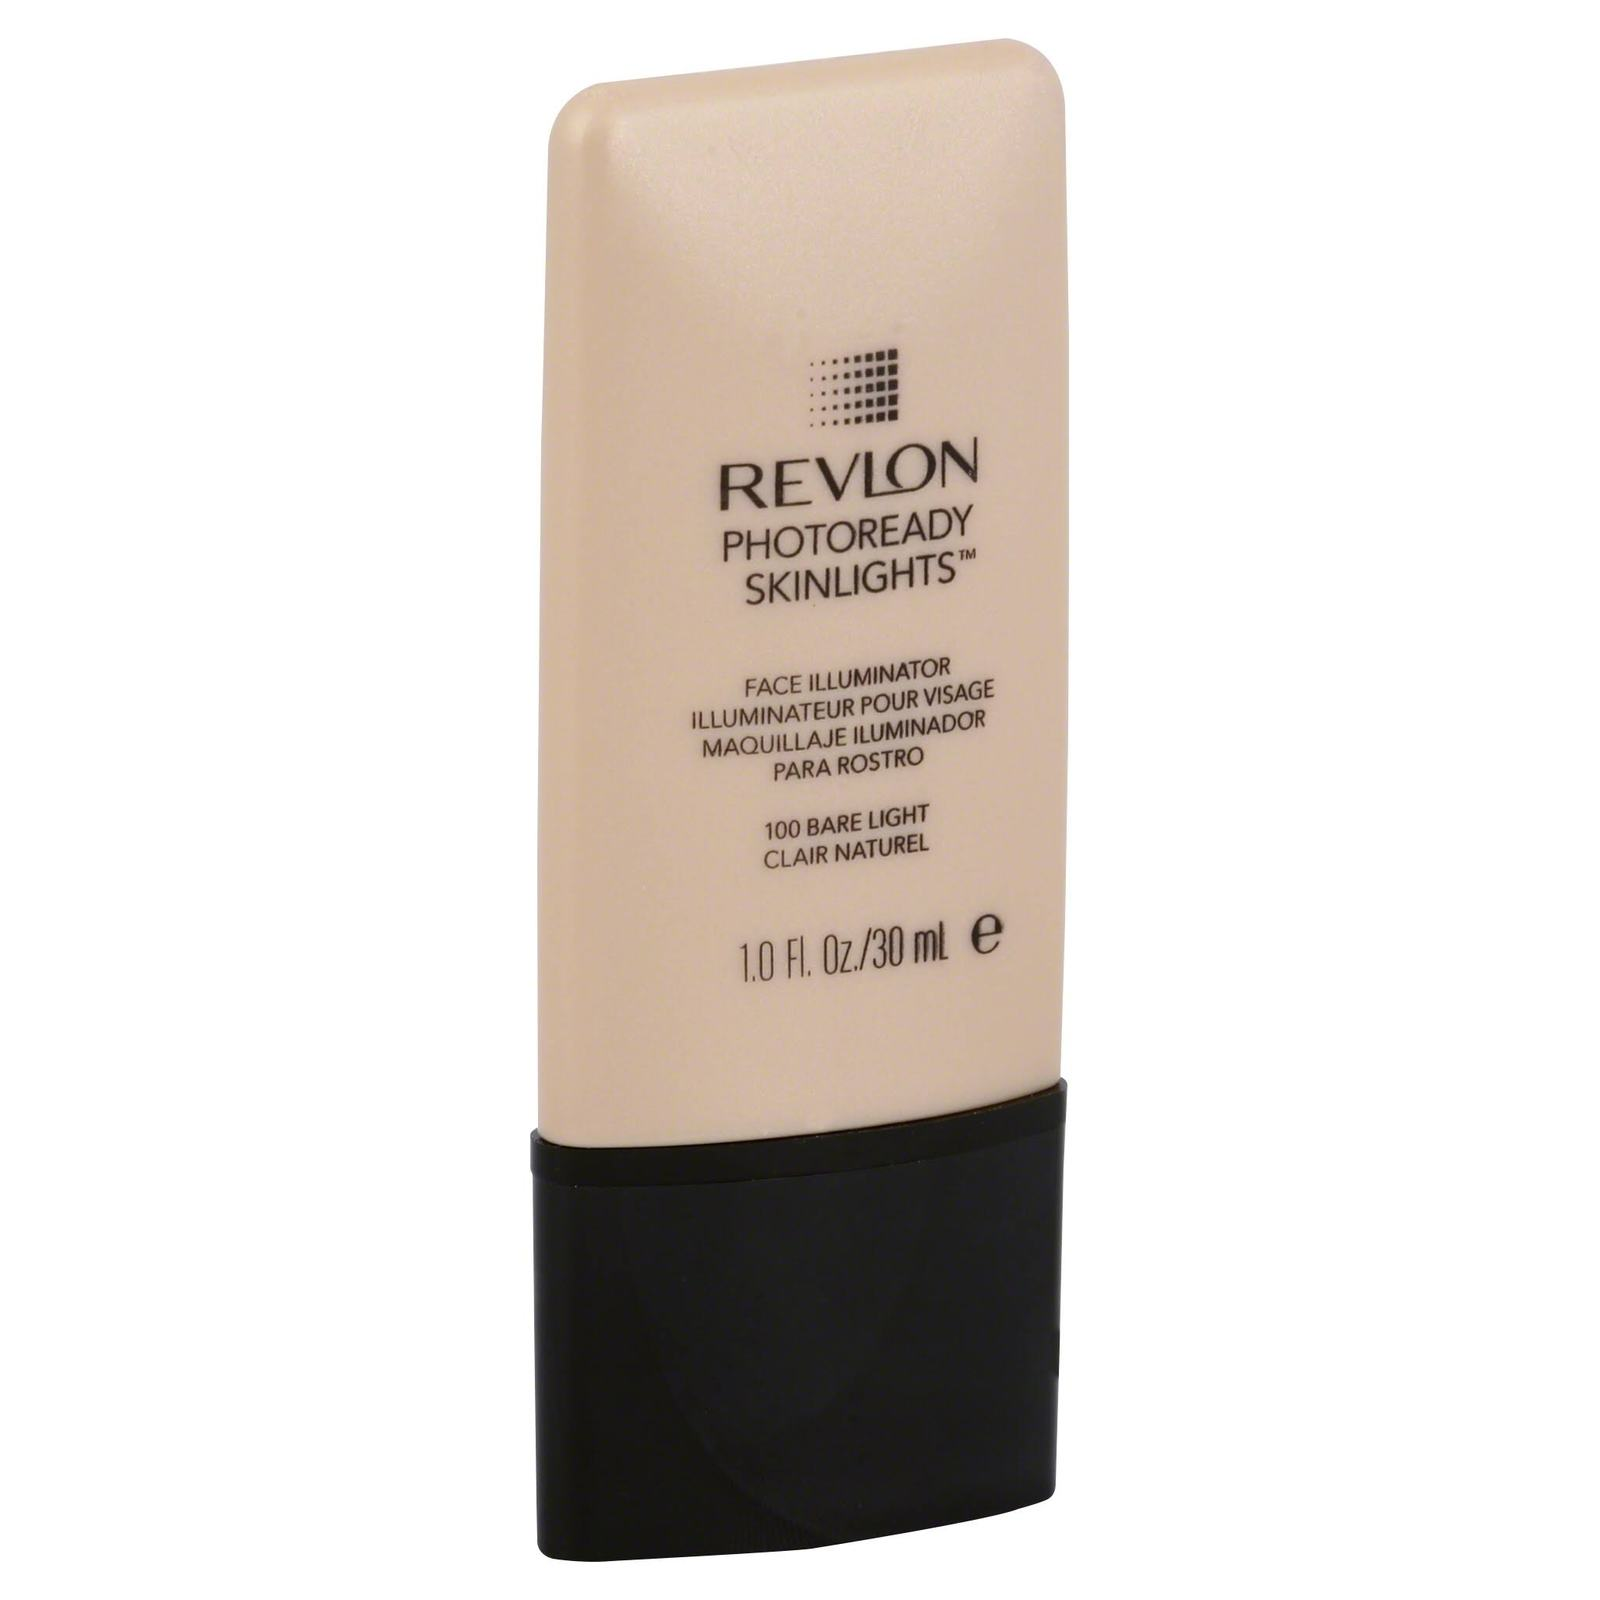 Primary image for Revlon Photo Ready Skinlights Face Illuminator - Bare Light - 1 oz by Revlon